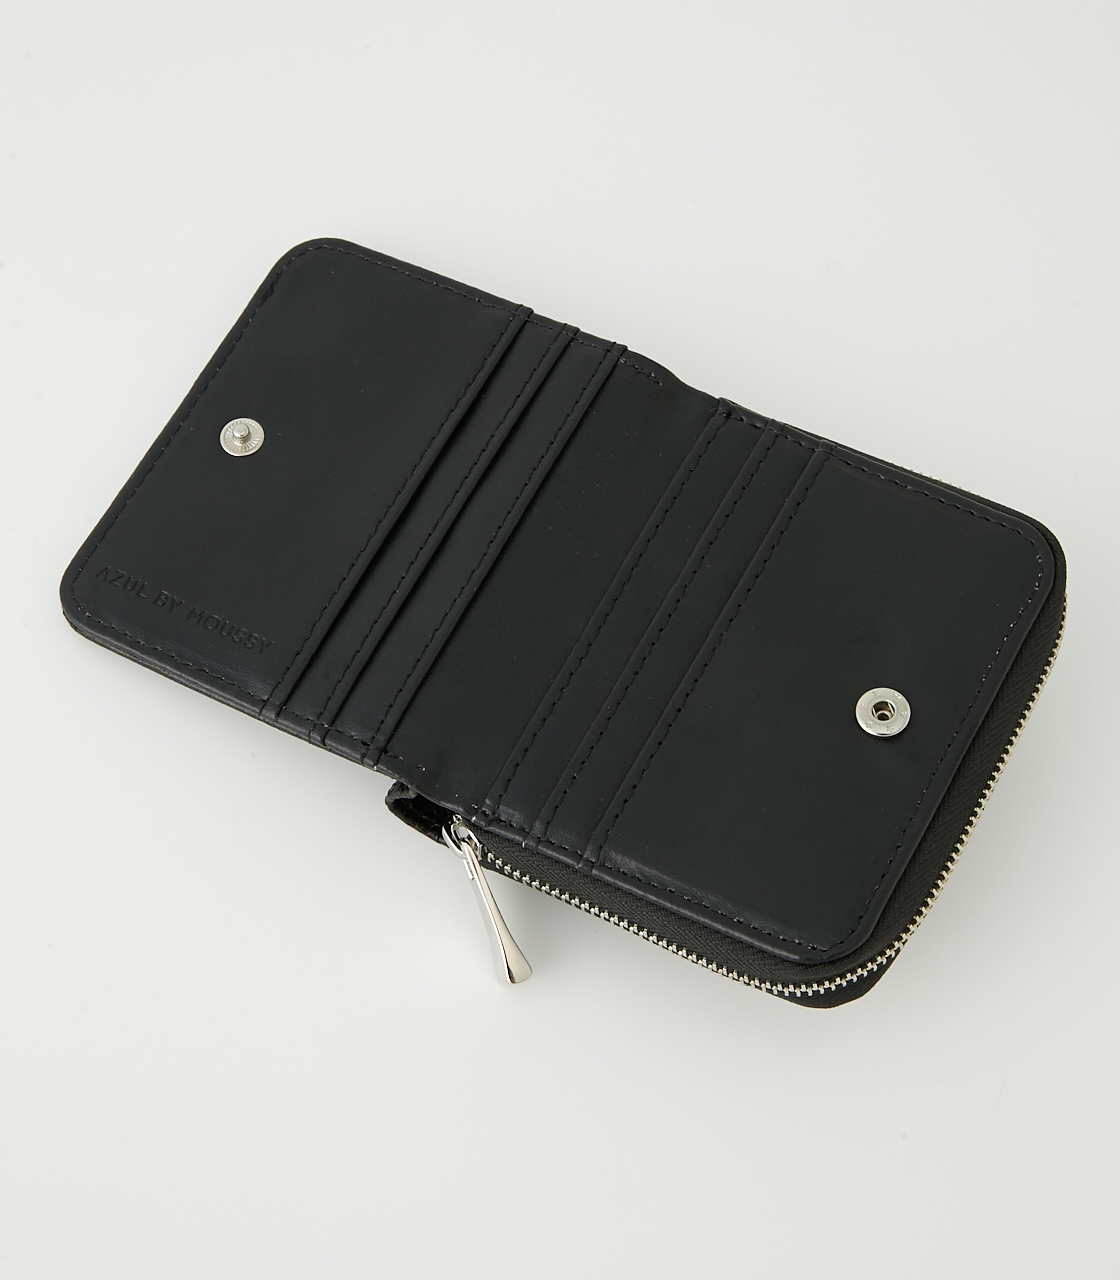 PYTHON COMPACT WALLET/パイソンコンパクトウォレット 詳細画像 柄BLK 4